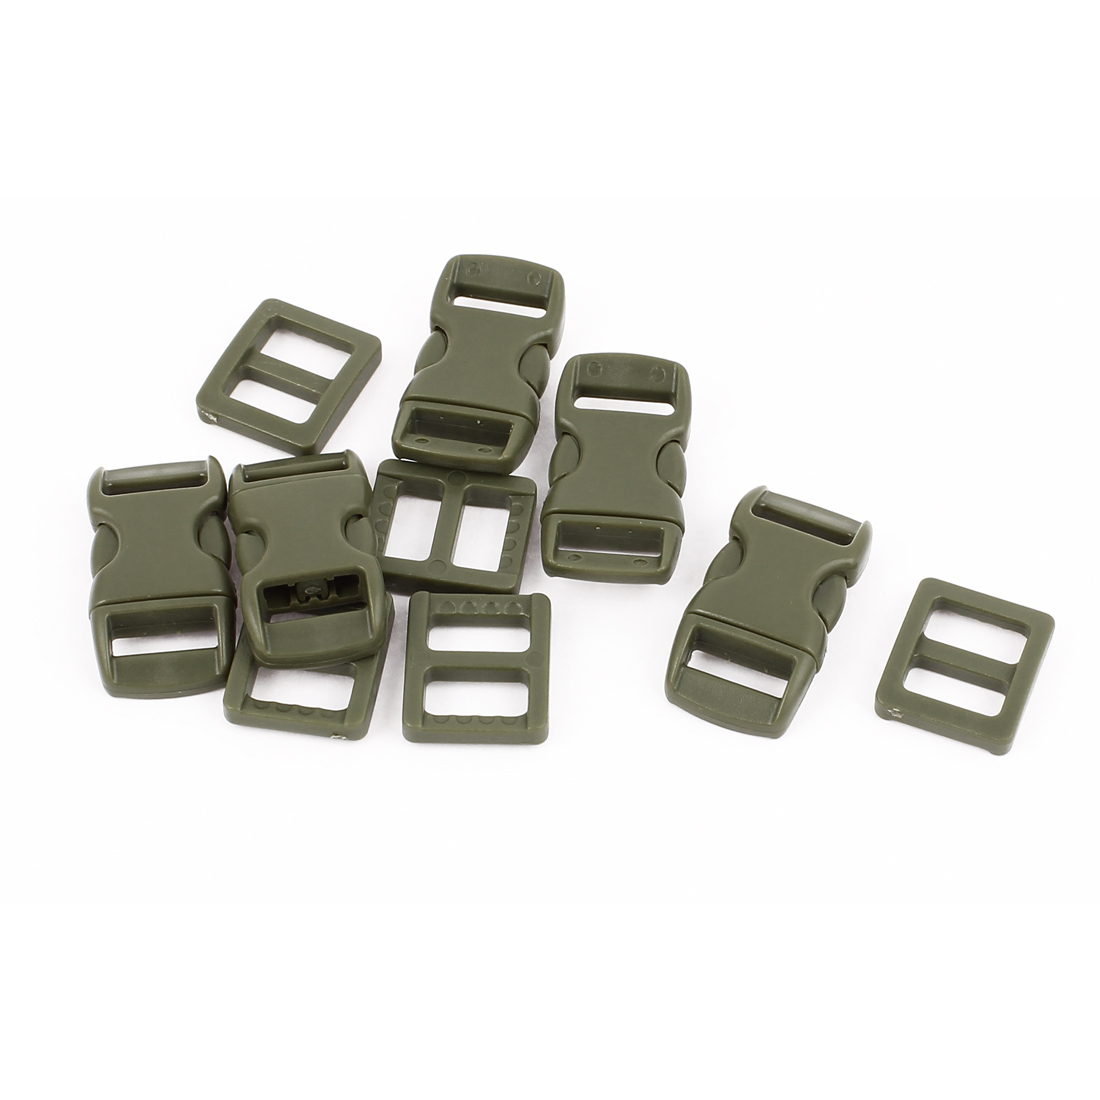 5pcs 10-11mm Strap Band Plastic Packbag Curved Clasp Side Quick Release Buckles Army Green